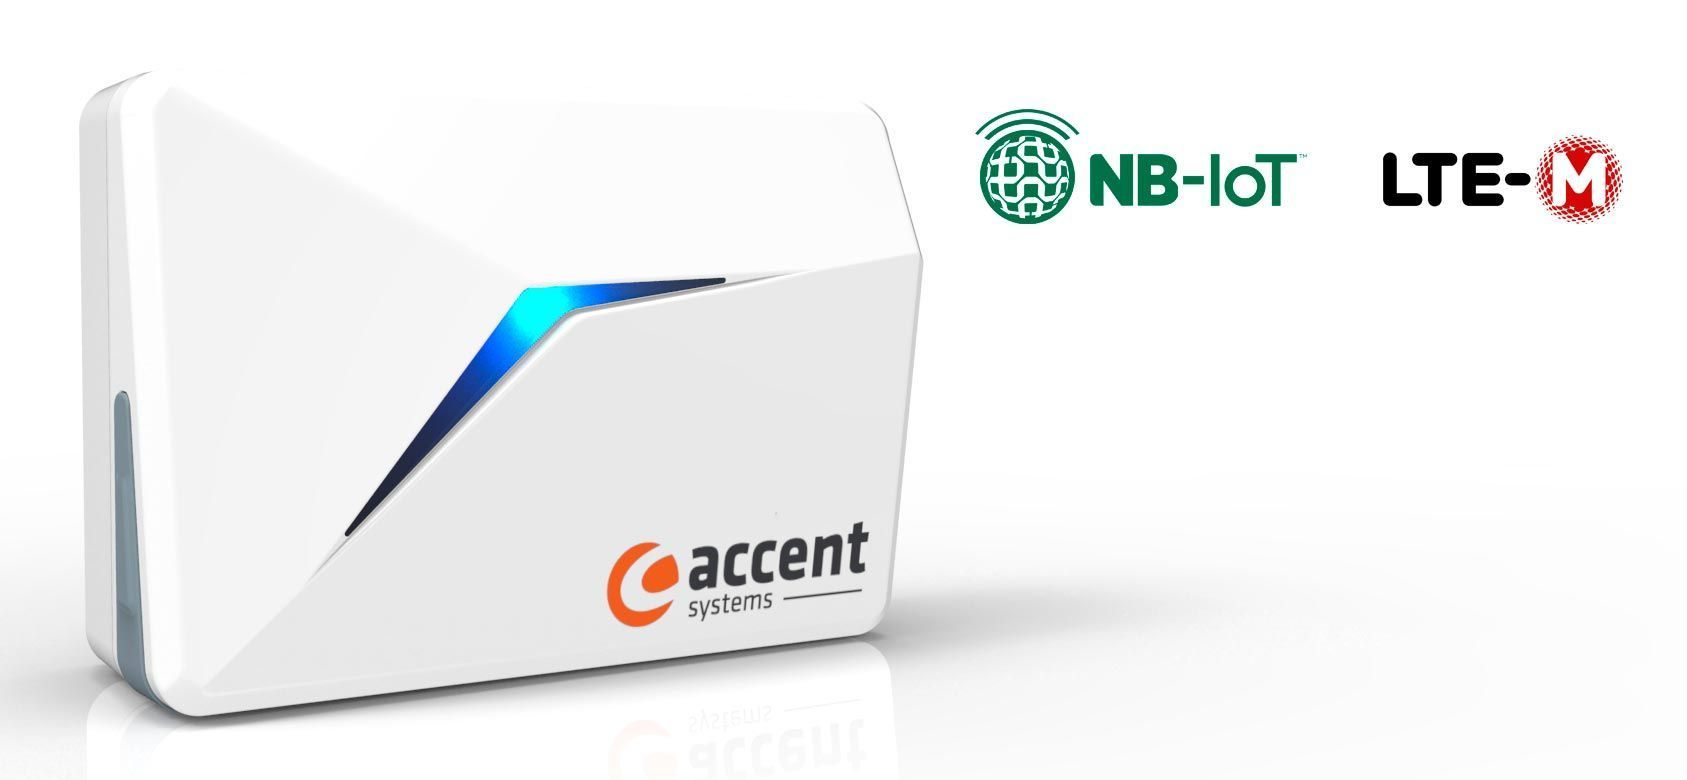 lte_beacon_iot_tracker_nbiot_ltem_accent_systems